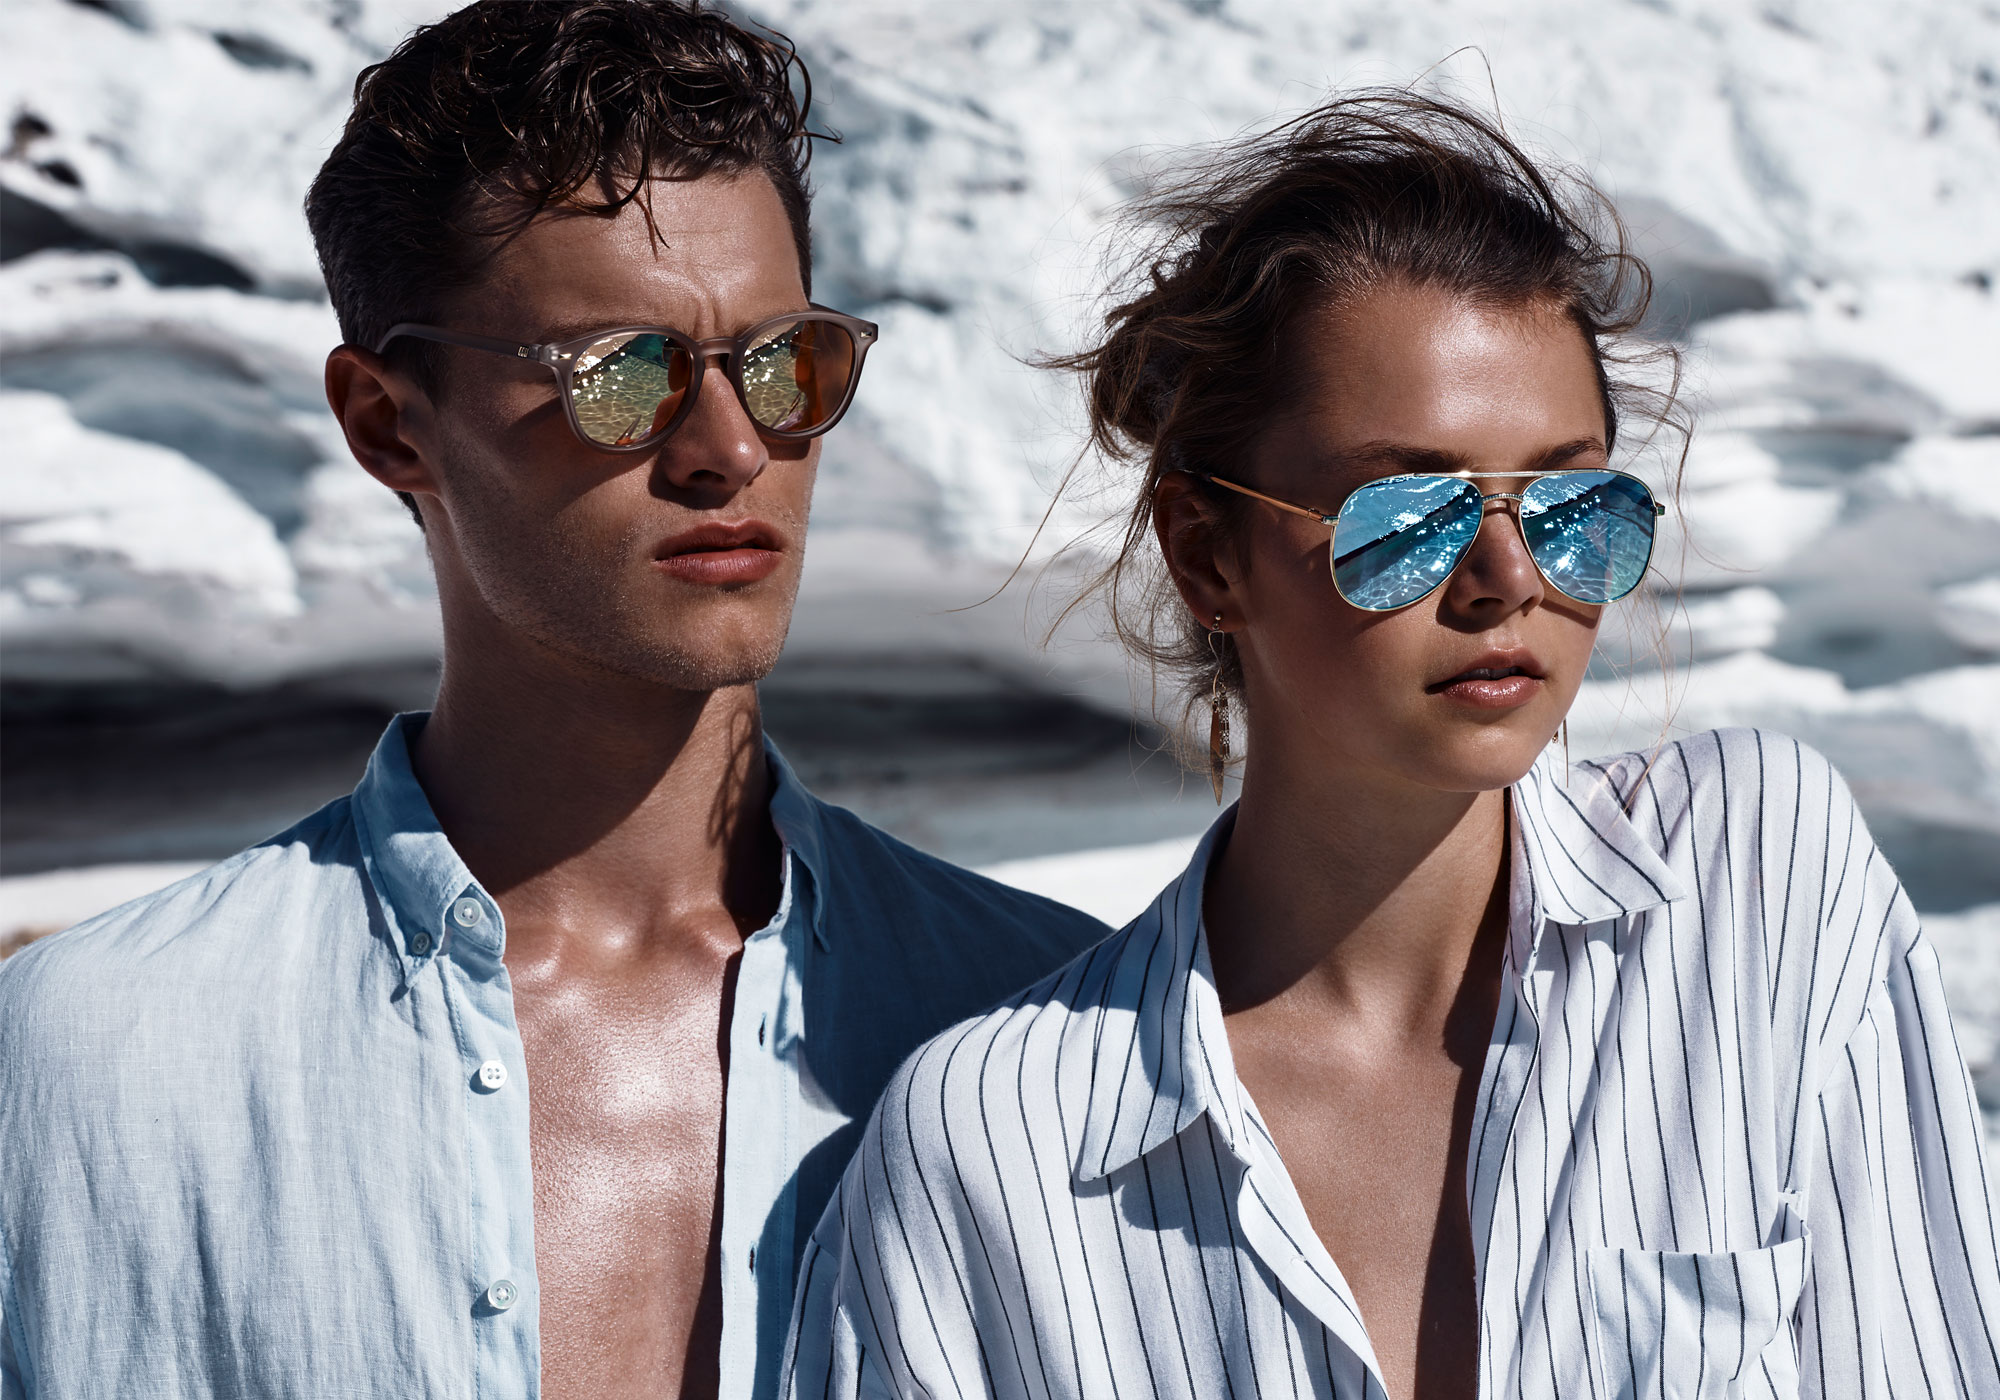 LE SPECS - Since 1979, Le Specs has become renowned globally for its iconic, Euro chic and innovative sunglasses collections at an affordable price. Incorporating a core selection of the original silhouettes, the brand was reimagined and relaunched in 2006 by Australian-owned Sunshades Eyewear.With a reputation as the ultimate summer accessory, Le Specs developed an international cult following and has become a true trendsetter in the global fashion market, spotted on celebrities including Olivia Palermo, Kate Moss, Lady Gaga, Gigi Hadid, Bella Hadid, Khloe Kardashian, Rihanna, Beyoncé and so on.